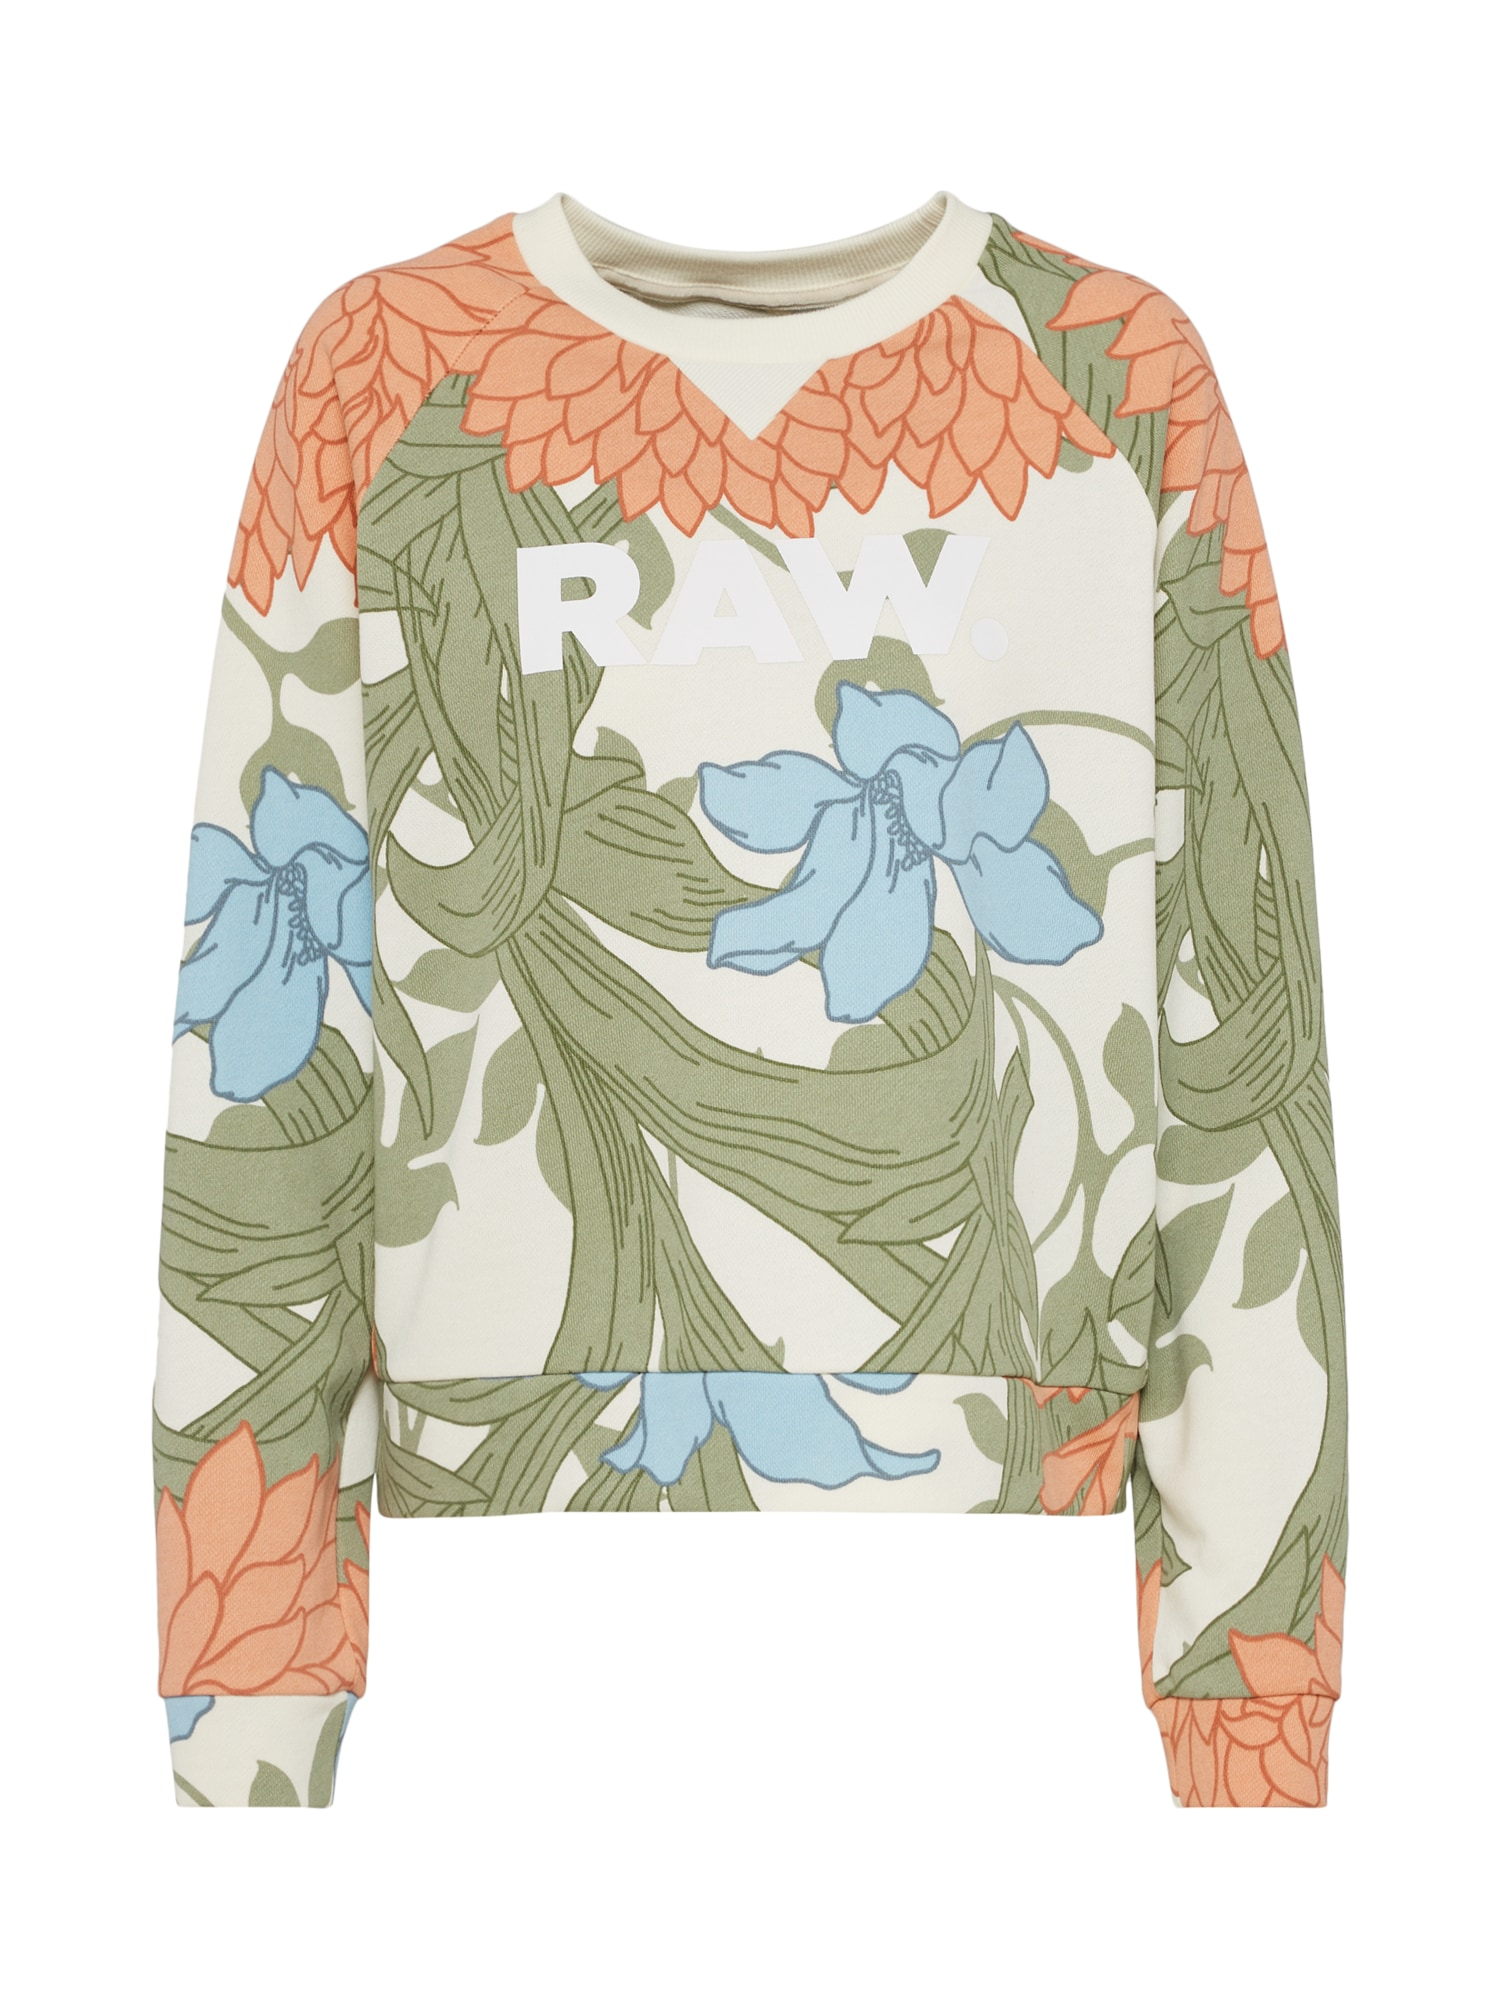 G-STAR RAW Dames Sweatshirt A-craft cropped r sw wmn l s groen pasteloranj